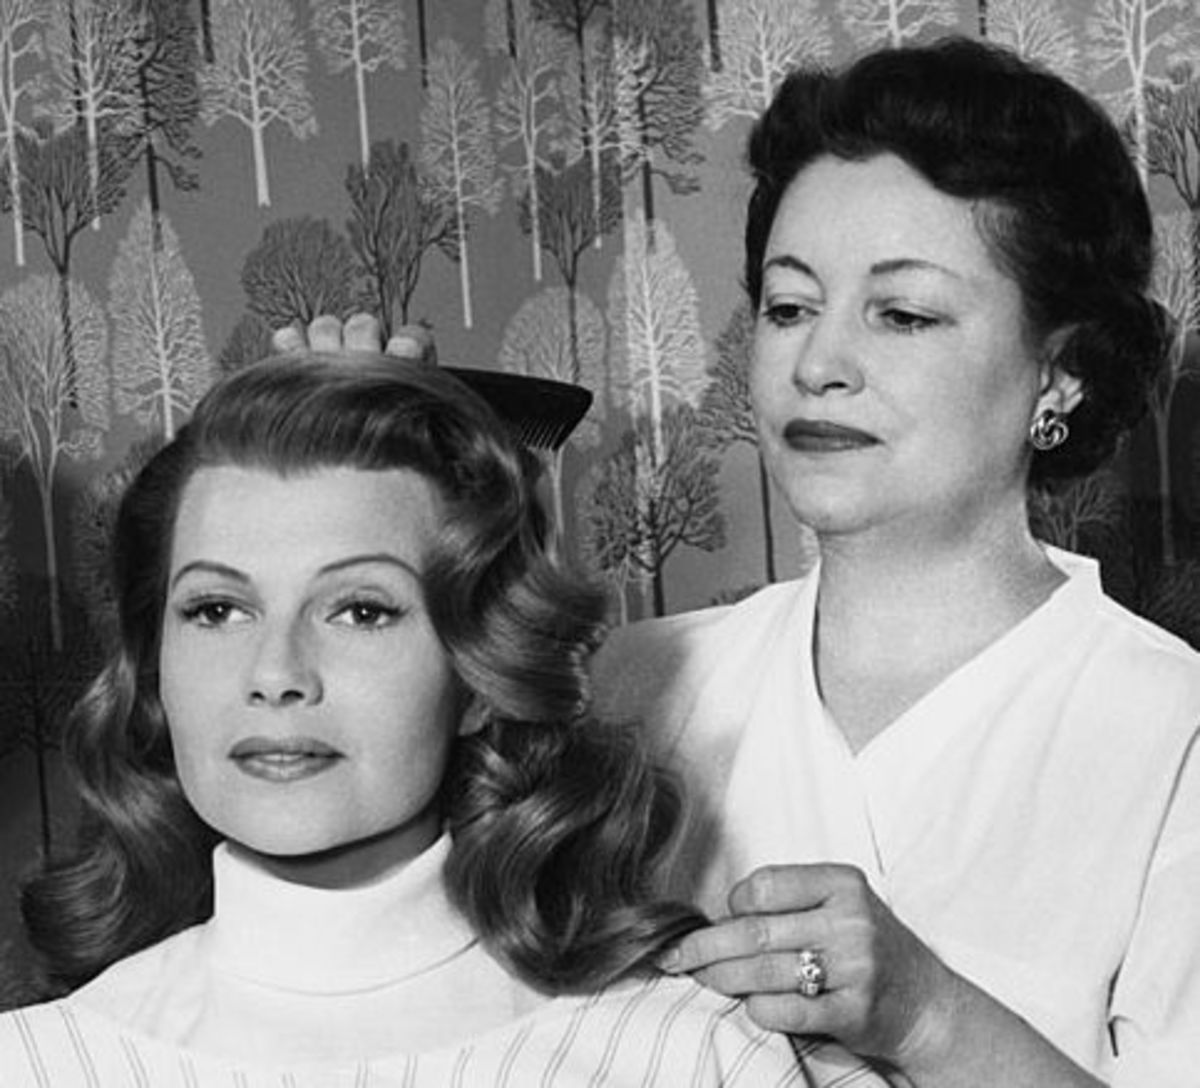 plastic-surgery-in-the-1950s-and-today